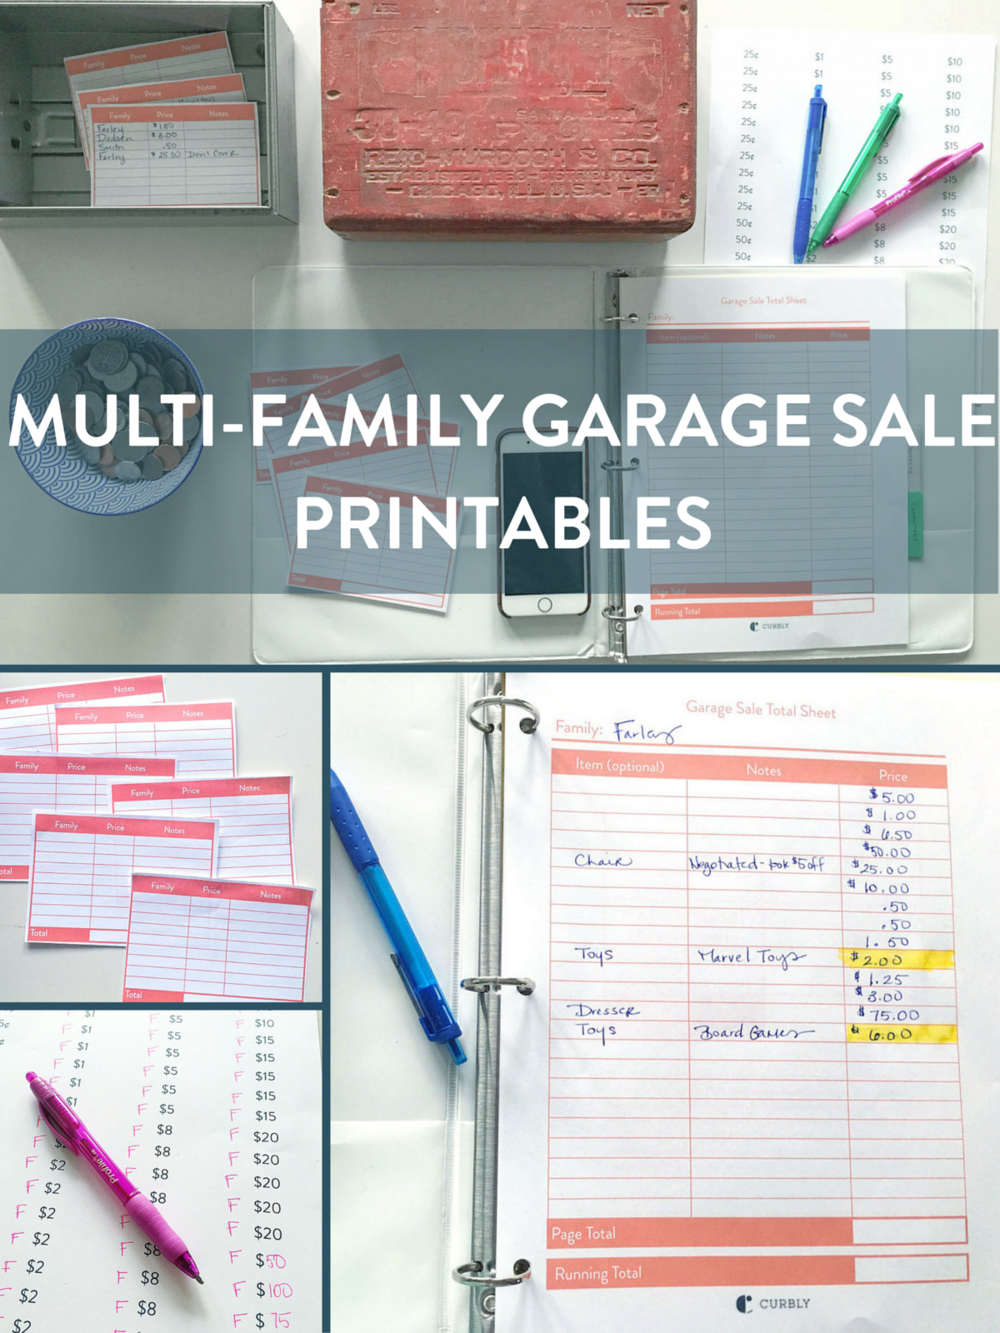 Printables To Help You Pull Off An Organized Multi-Family Garage ...